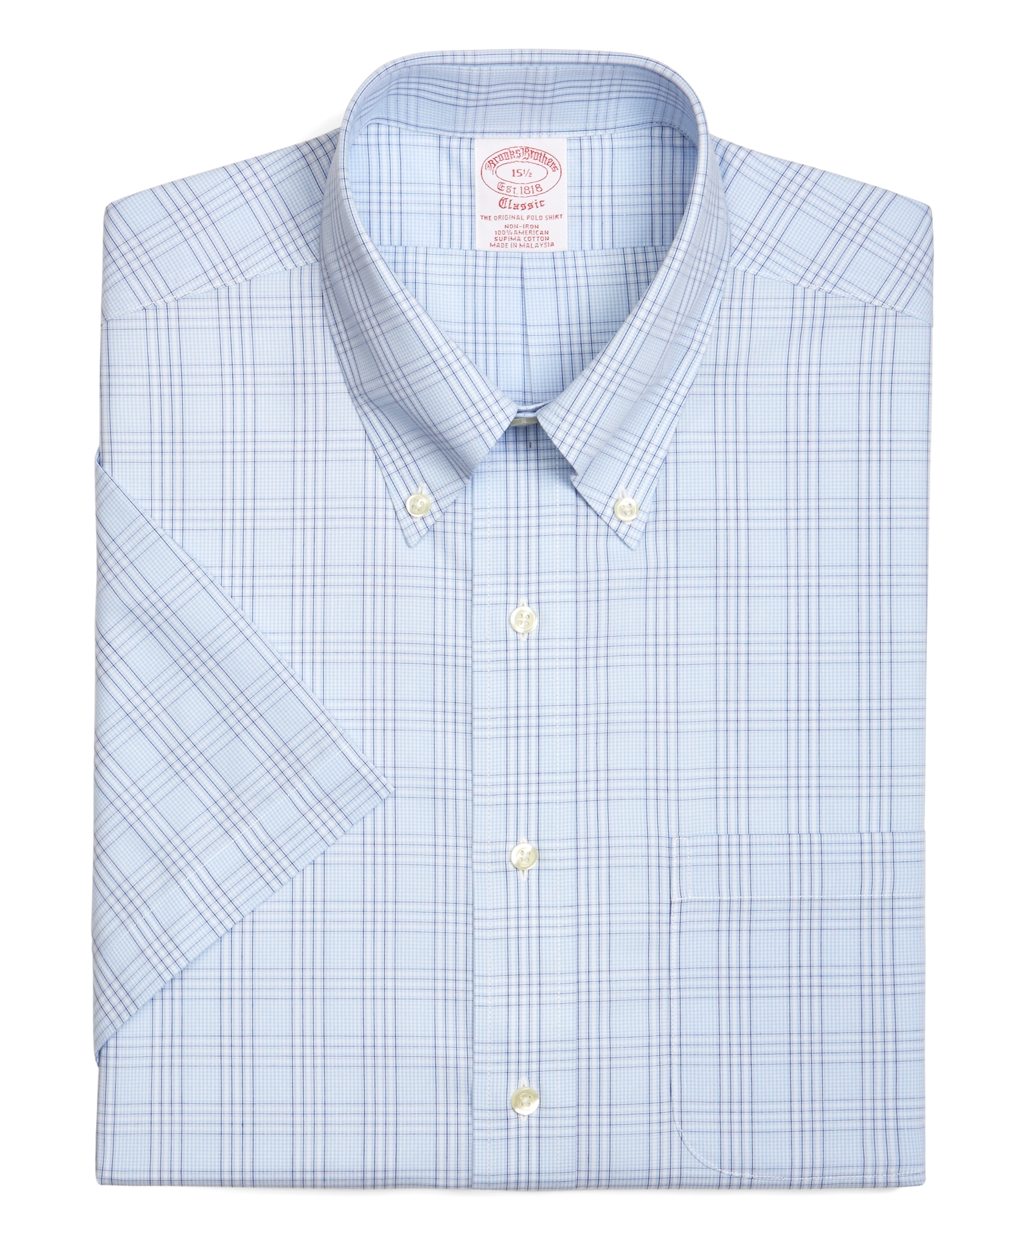 Brooks brothers traditional fit tonal glen plaid for Brooks brothers dress shirt fit guide